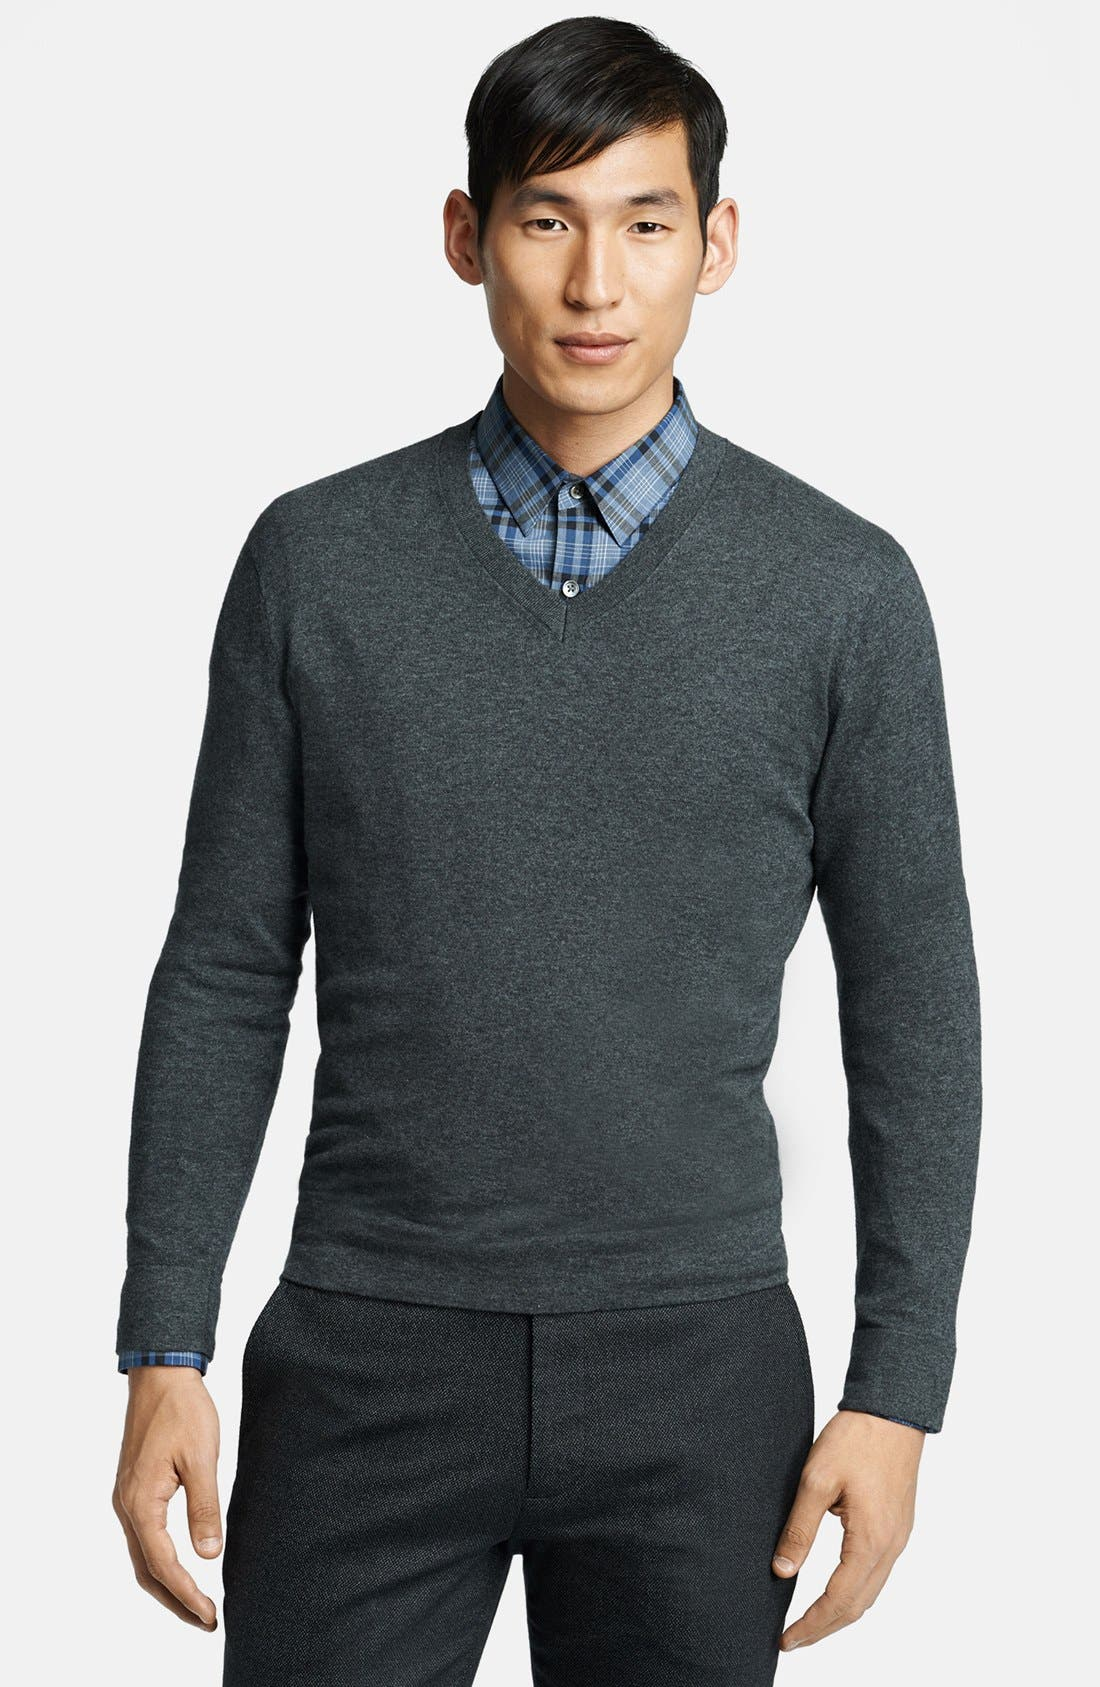 Alternate Image 1 Selected - Theory V-Neck Cotton & Cashmere Sweater